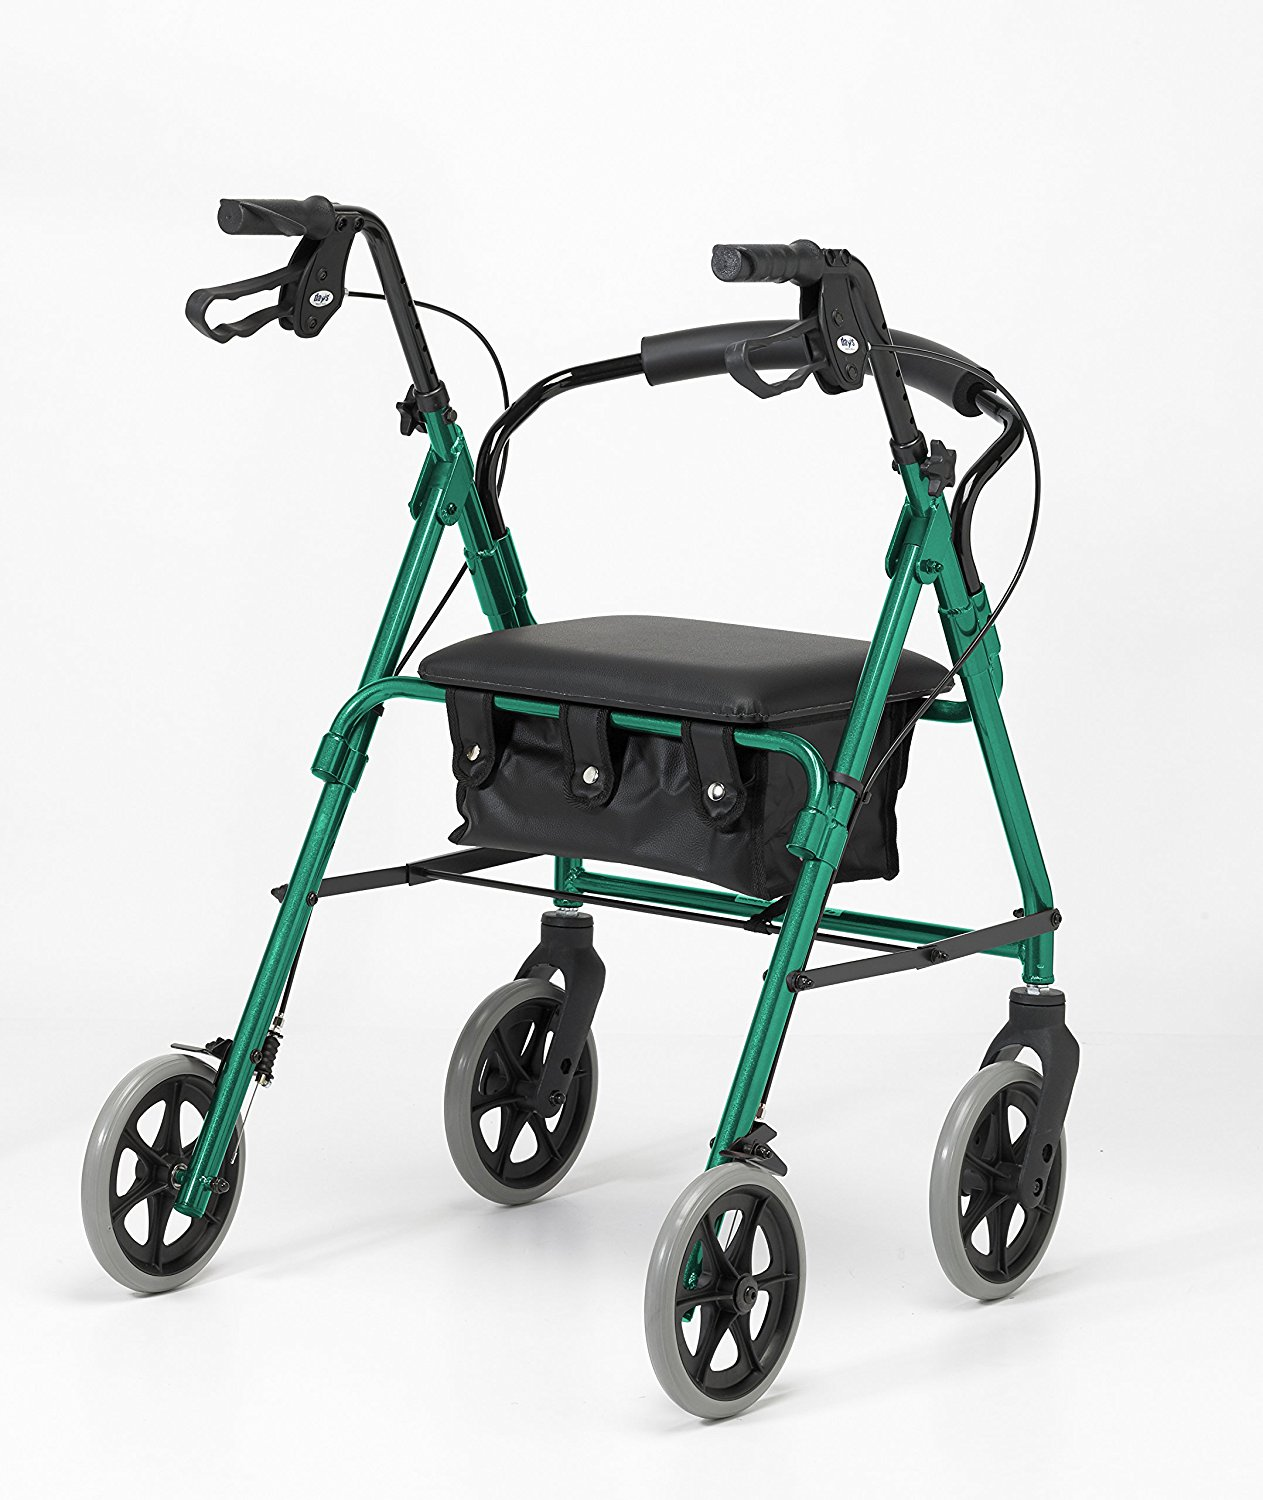 Best Rollator Walkers for Seniors 2020